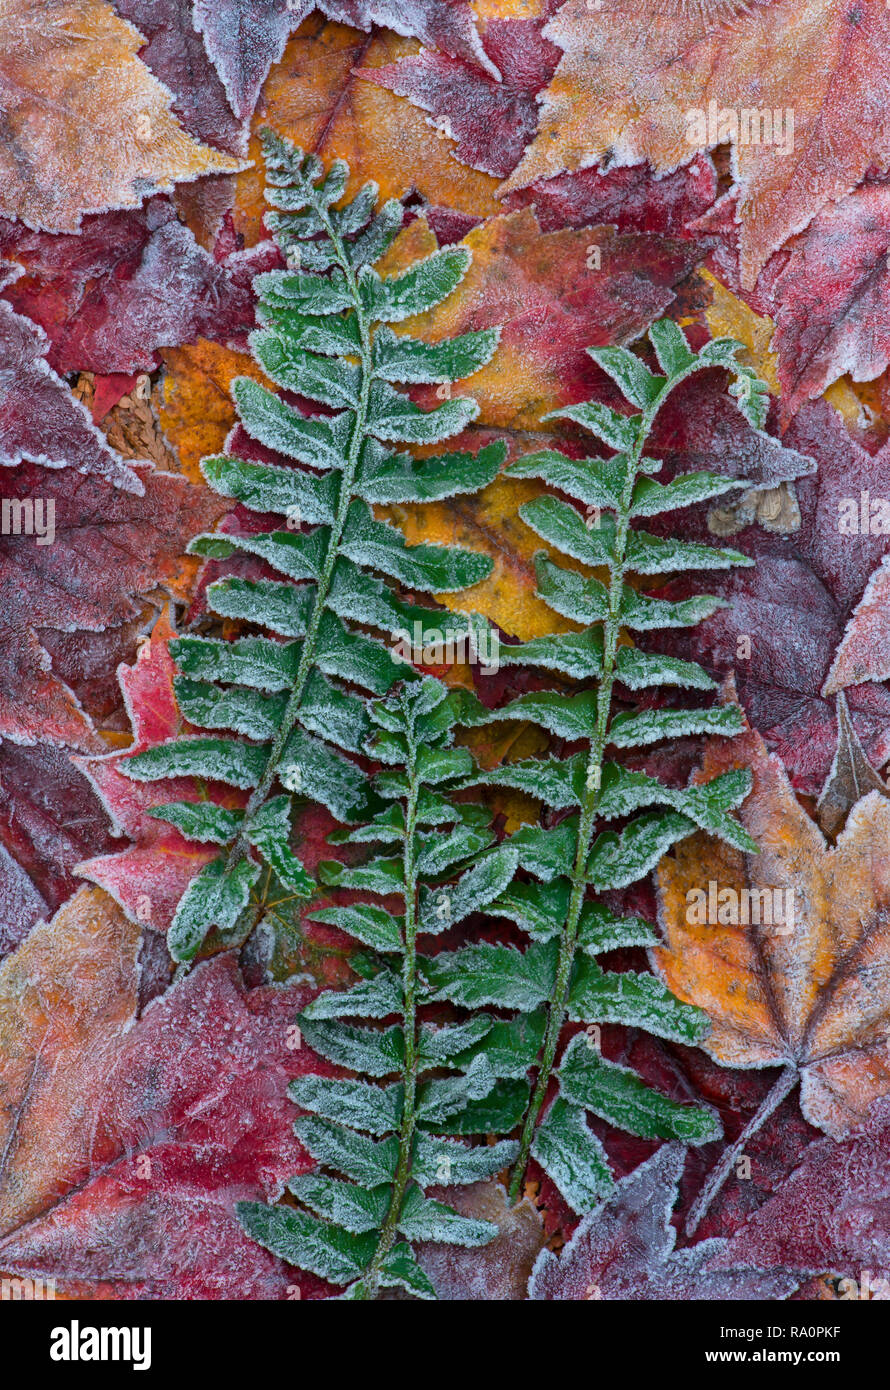 Frosted Maple Leaves (Acer rubrum) and Christmas ferns (Polystichum acrostichoides), Autumn, Eastern deciduous forest, E North America, by Skip Moody/ - Stock Image